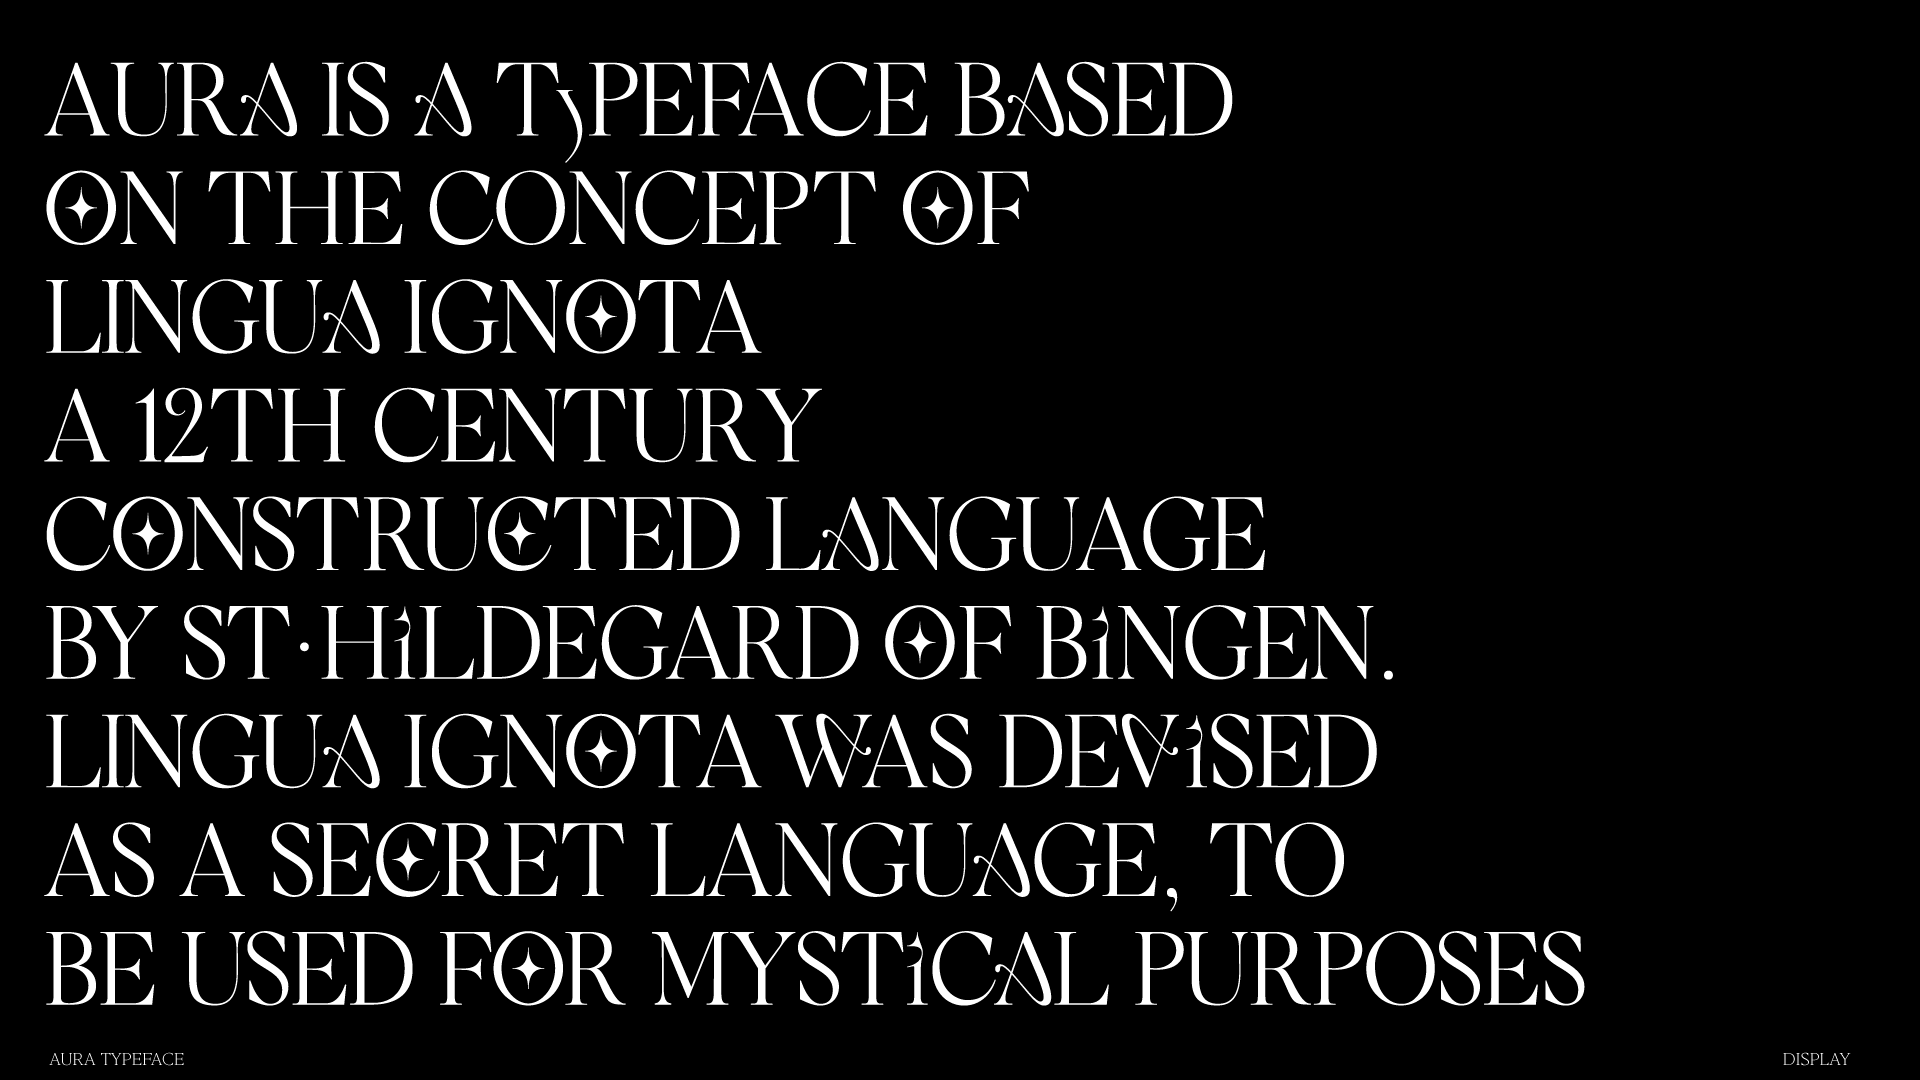 "05 collide24 pngtypeface aura - Studio Nari and Margot Lévêque on their typeface ""Aura"", a modern interpretation of the mystical language Lingua Ignota"